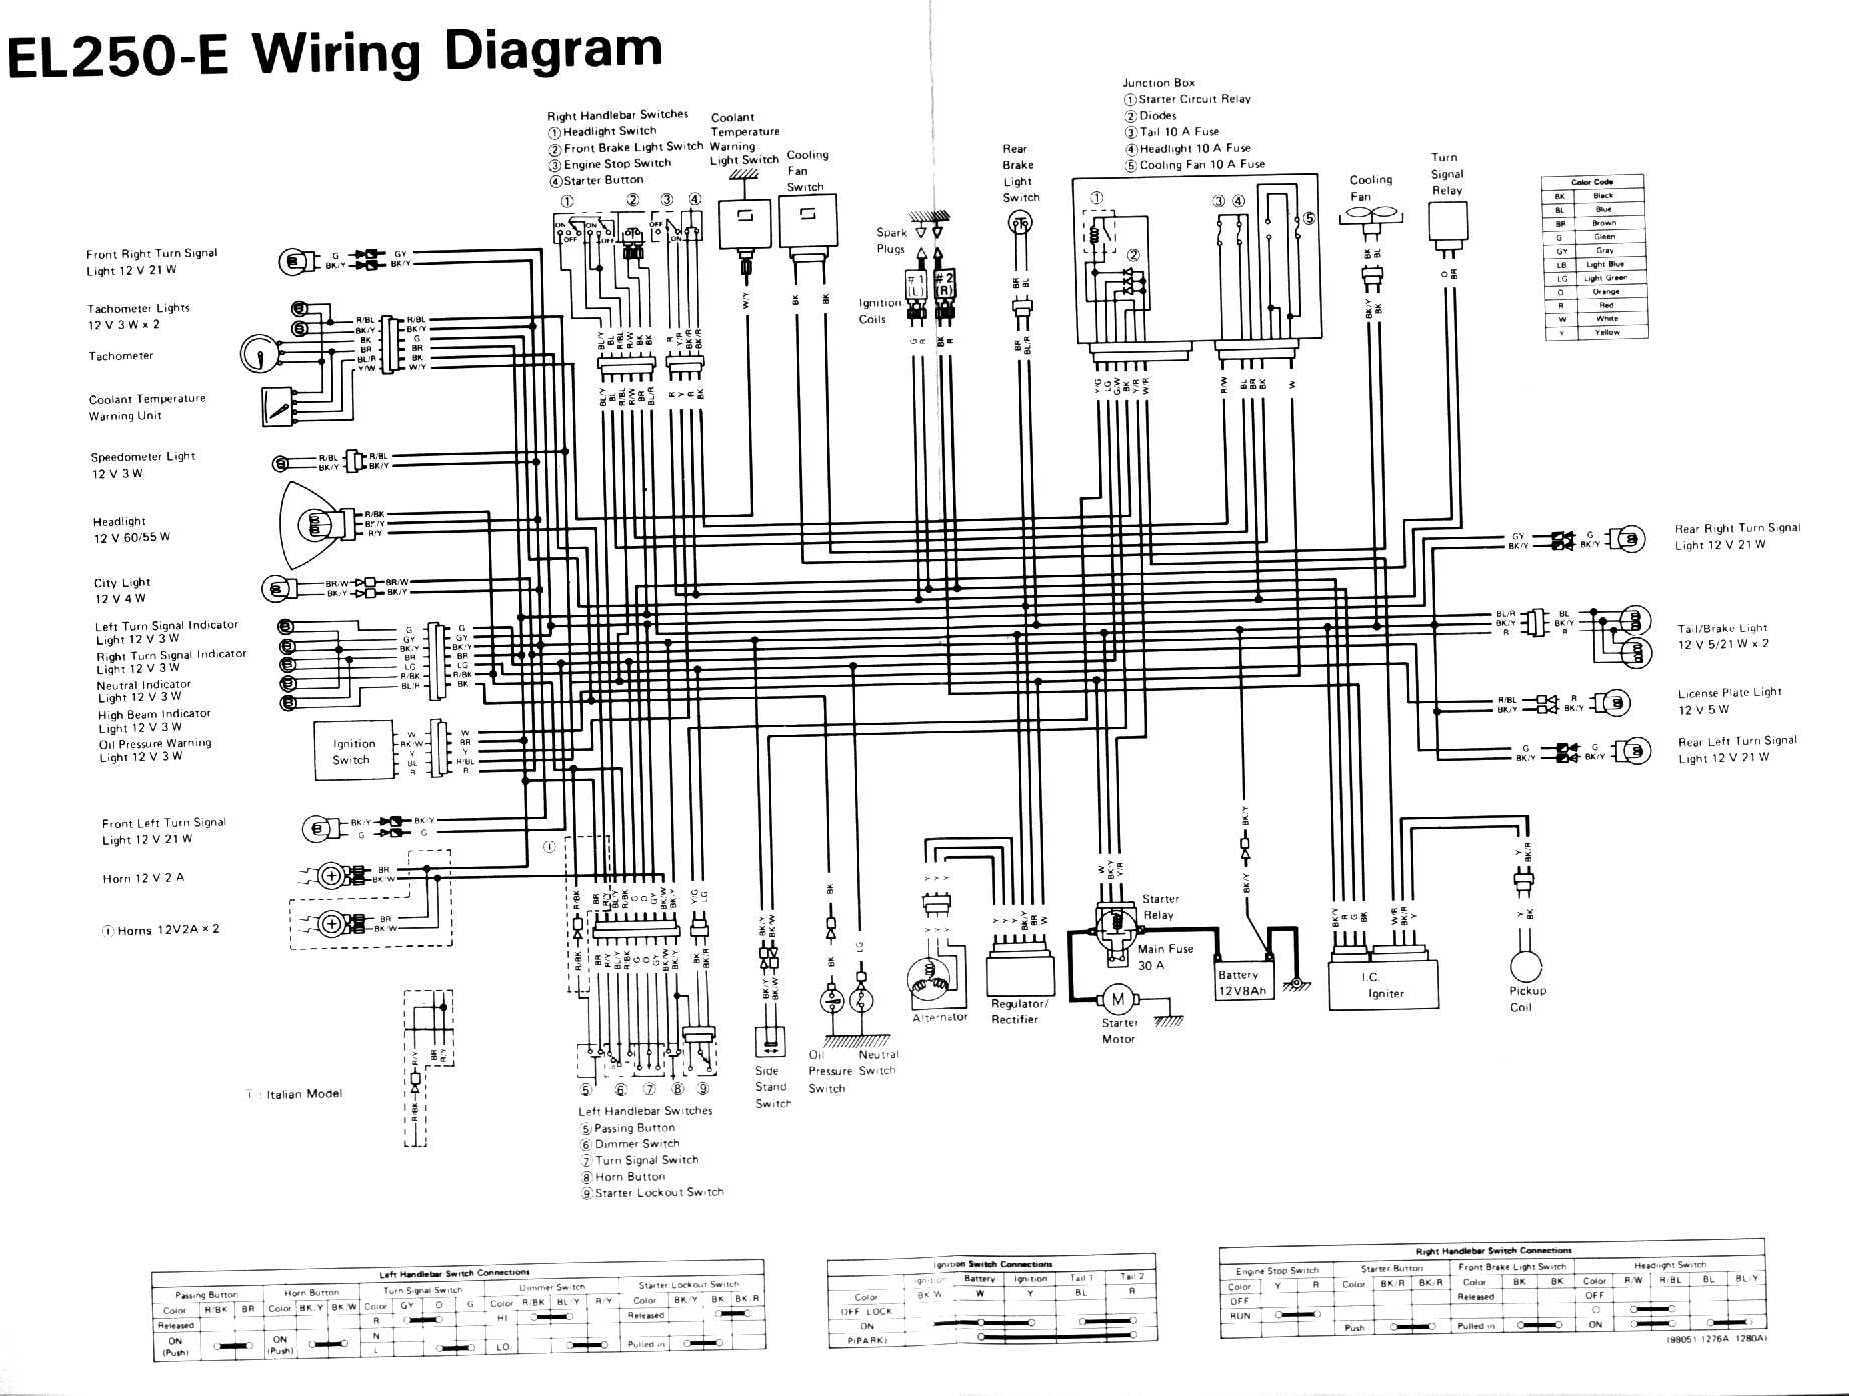 wiring diagram honda xr650l with Manuali Di Manutenzione Moto on Xr600 Wiring Diagram further Honda Xl 600 Wiring Diagram together with 1986 Honda Atv Wiring Diagram besides Honda Xr400 Wiring Diagram as well Xr600 Wiring Diagram.